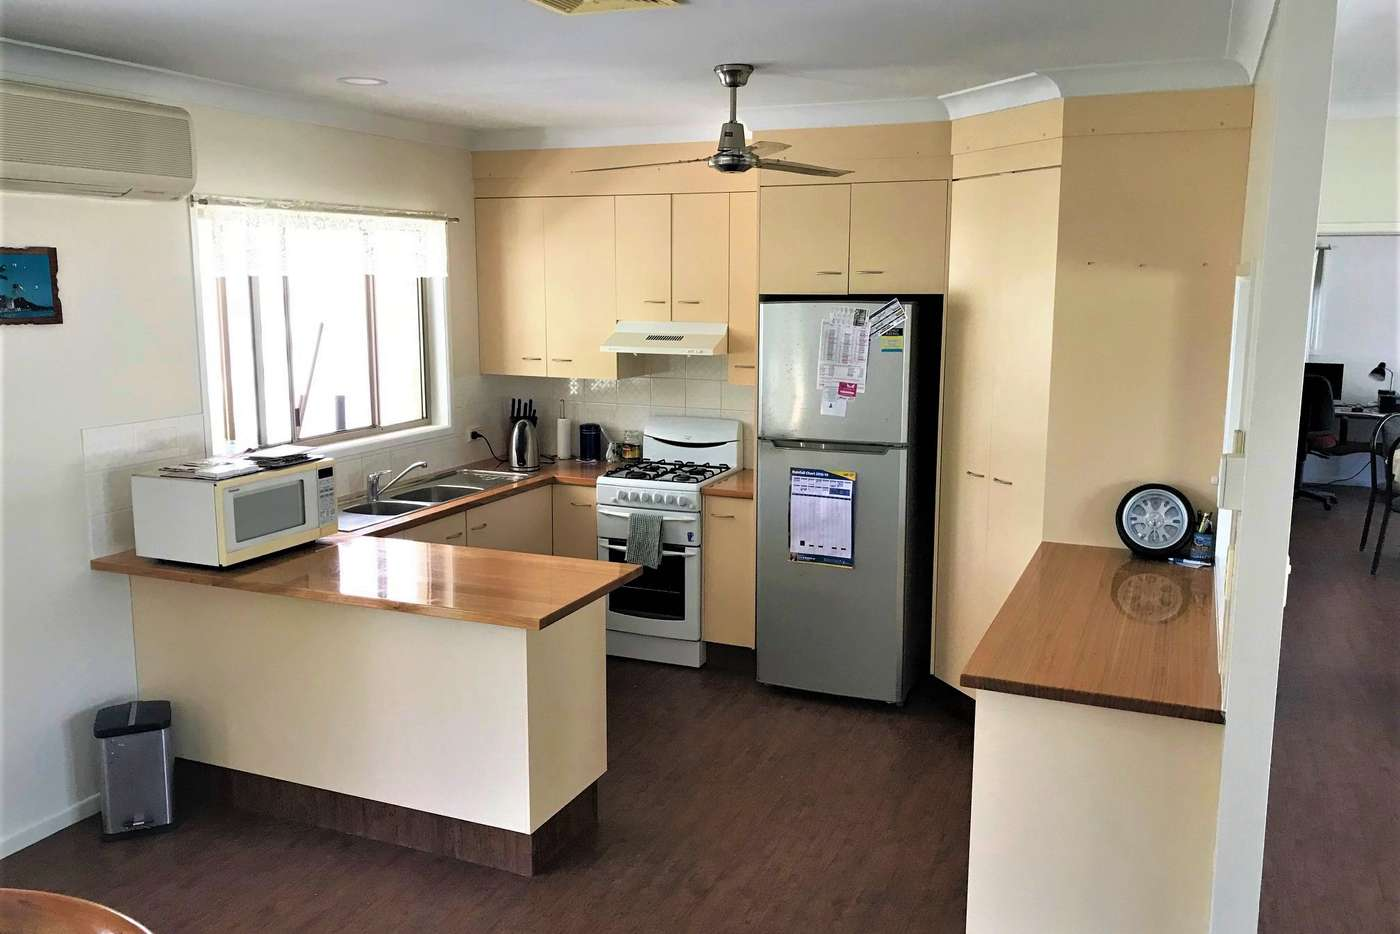 Sixth view of Homely house listing, 18 Allingham Way, Agnes Water QLD 4677